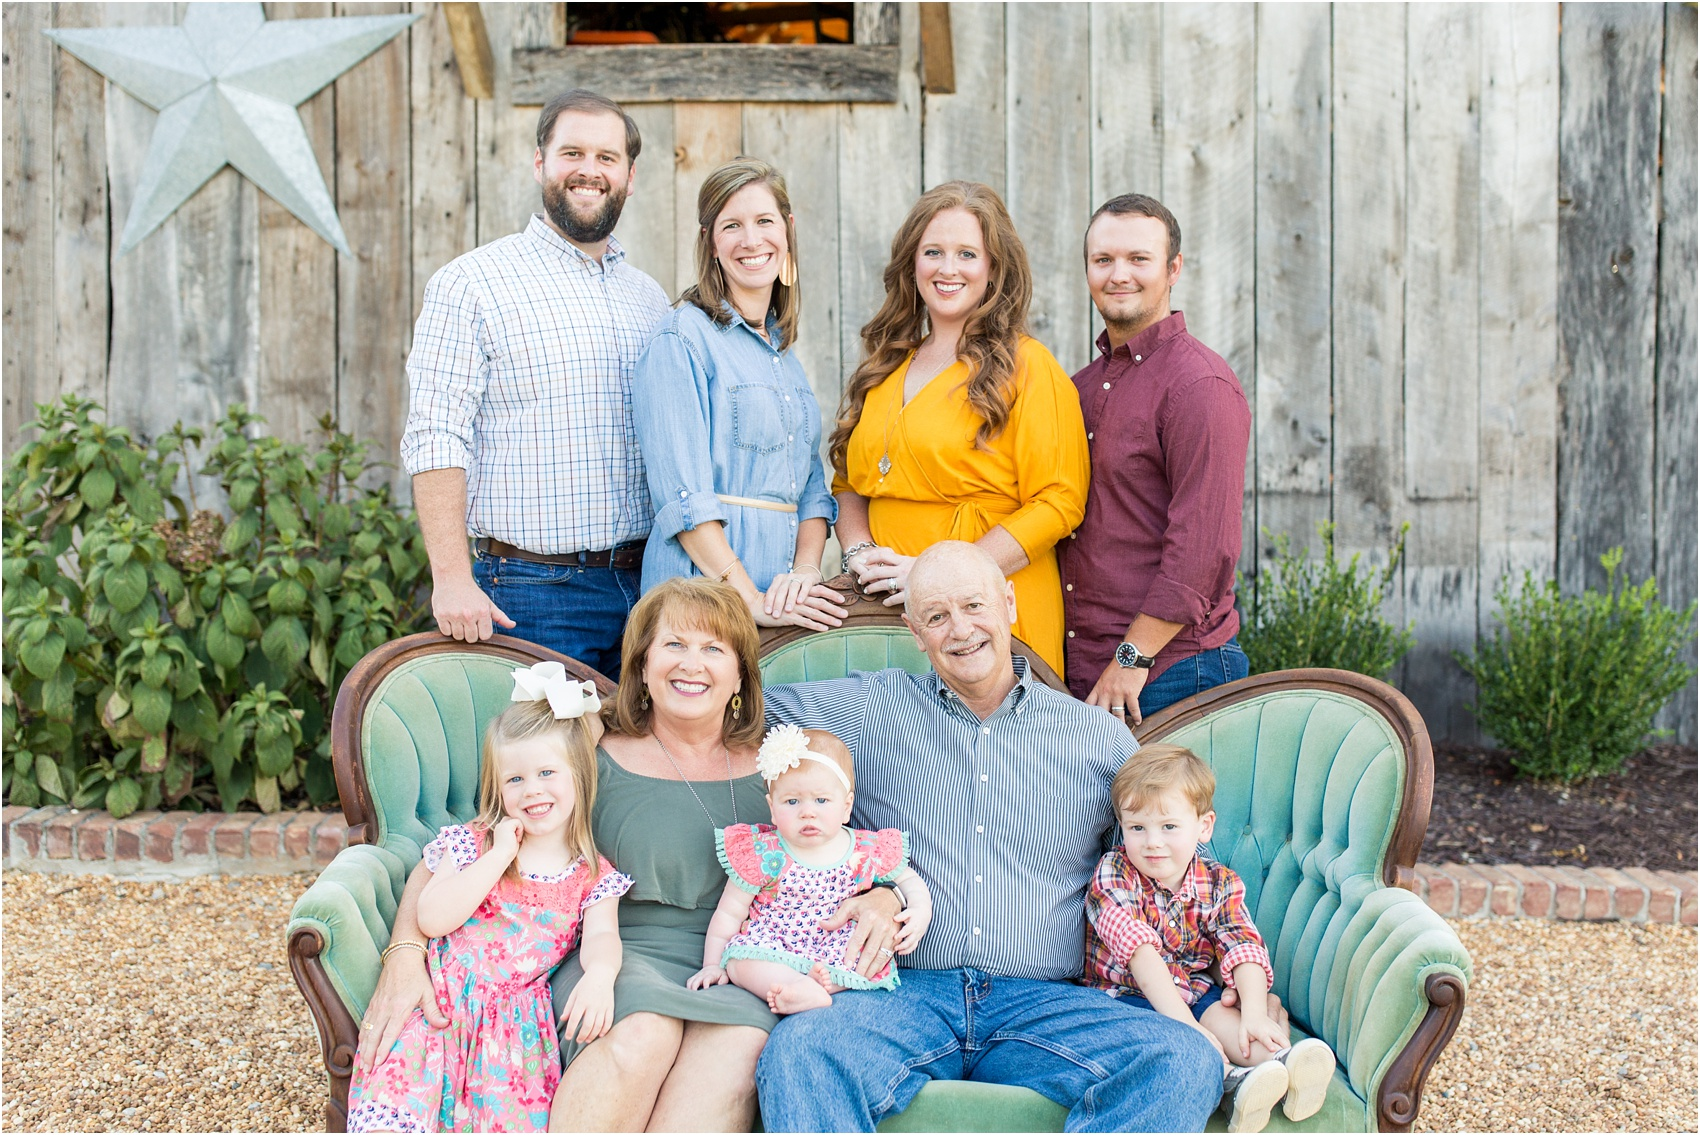 Savannah Eve Photography- Chambers Fam-11.jpg